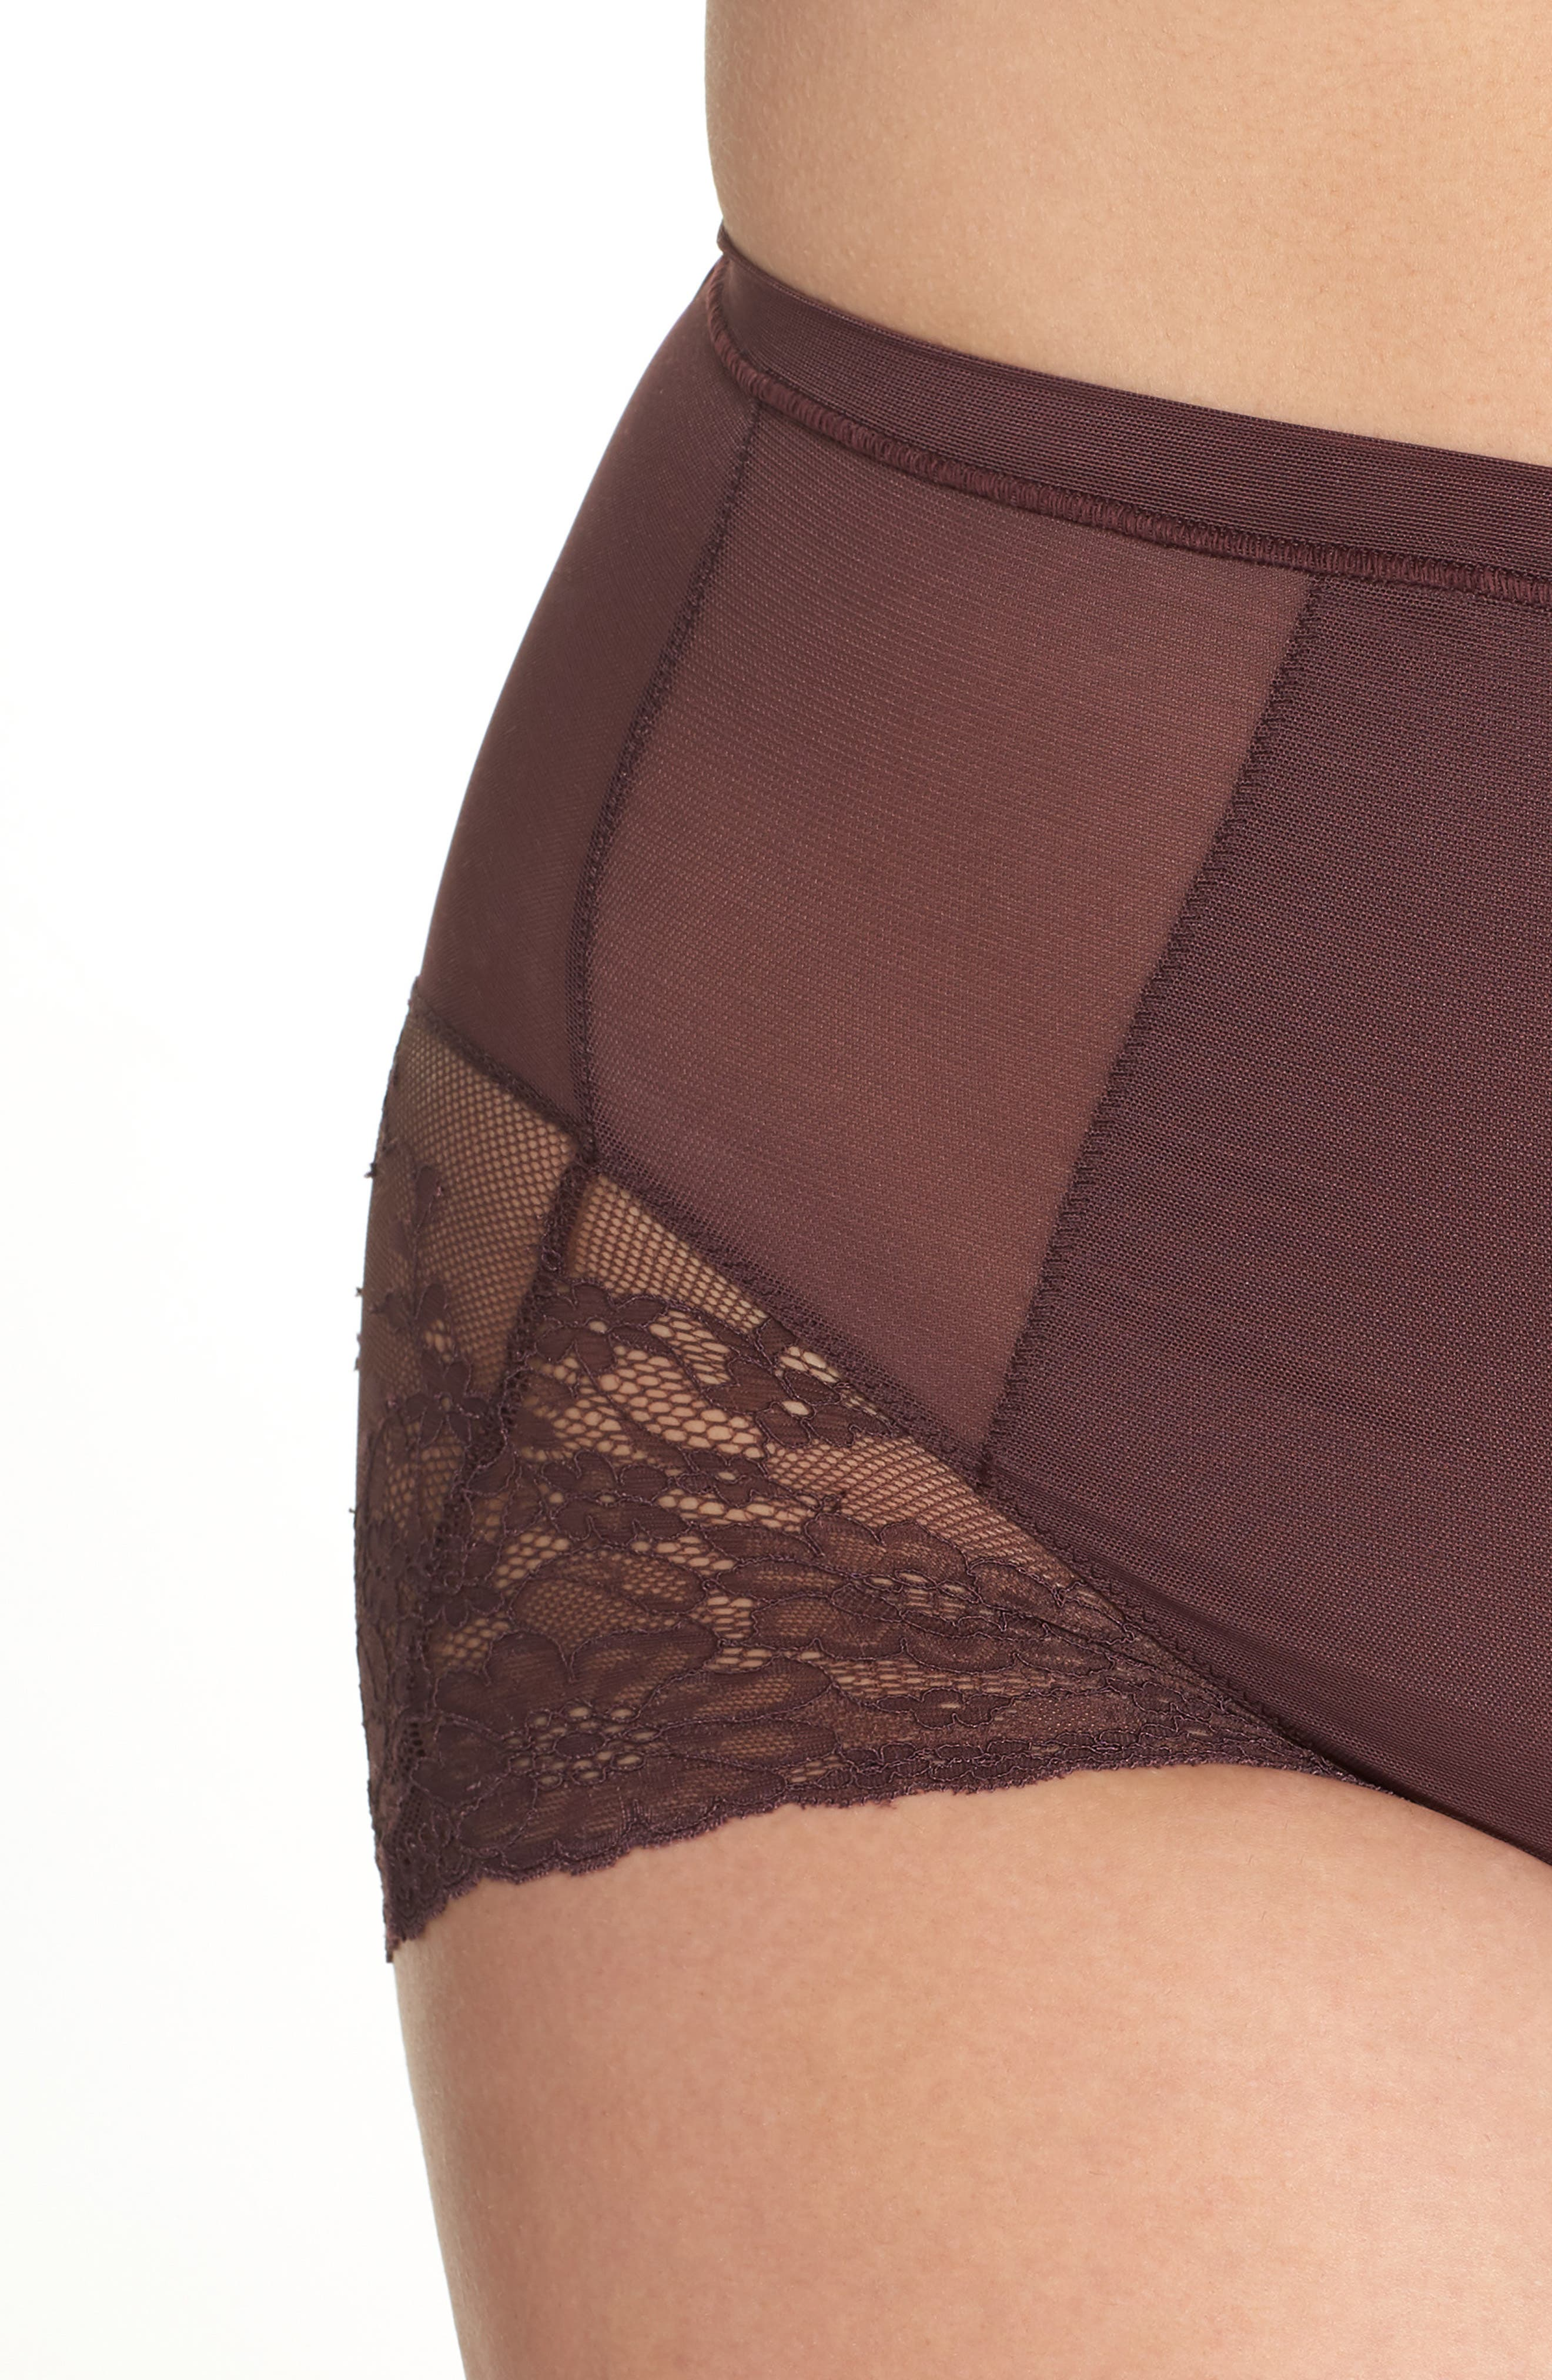 Spotlight On Lace Briefs,                             Alternate thumbnail 4, color,                             GARNET